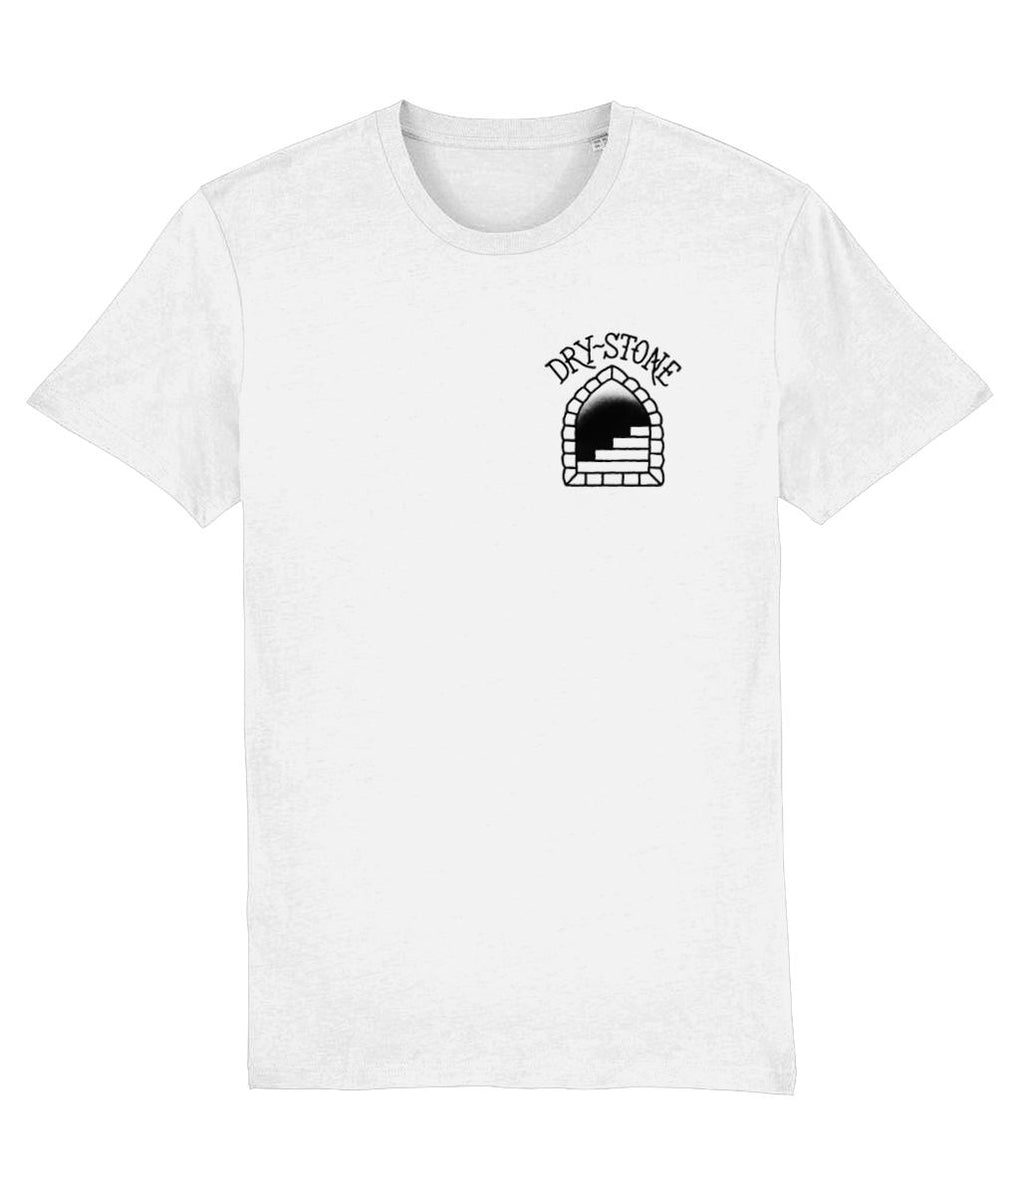 tattoo inspired T-shirt X-Small / White Drystone Shark & Anchor Tee - Black & White